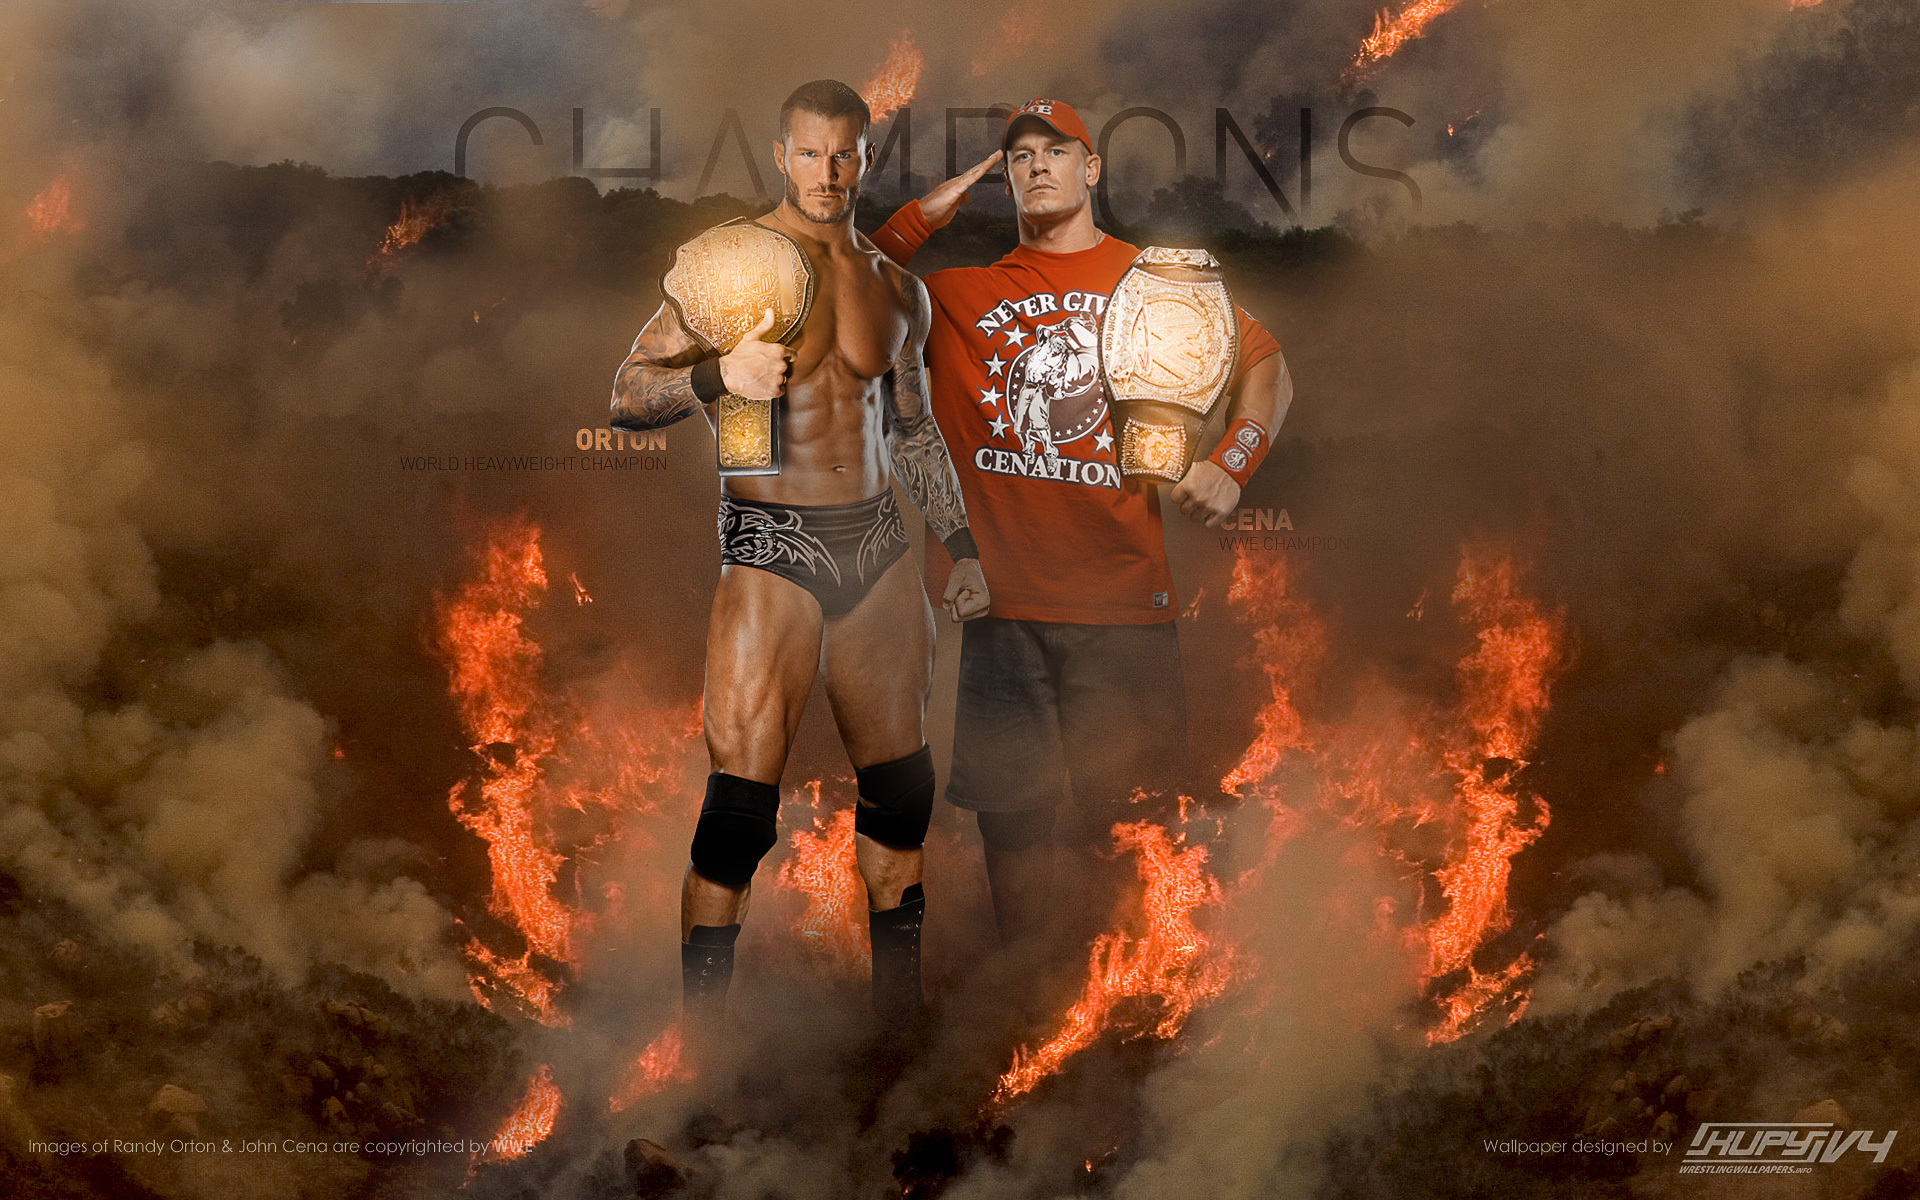 John Cena As Champions Wallpaper 1920x1200